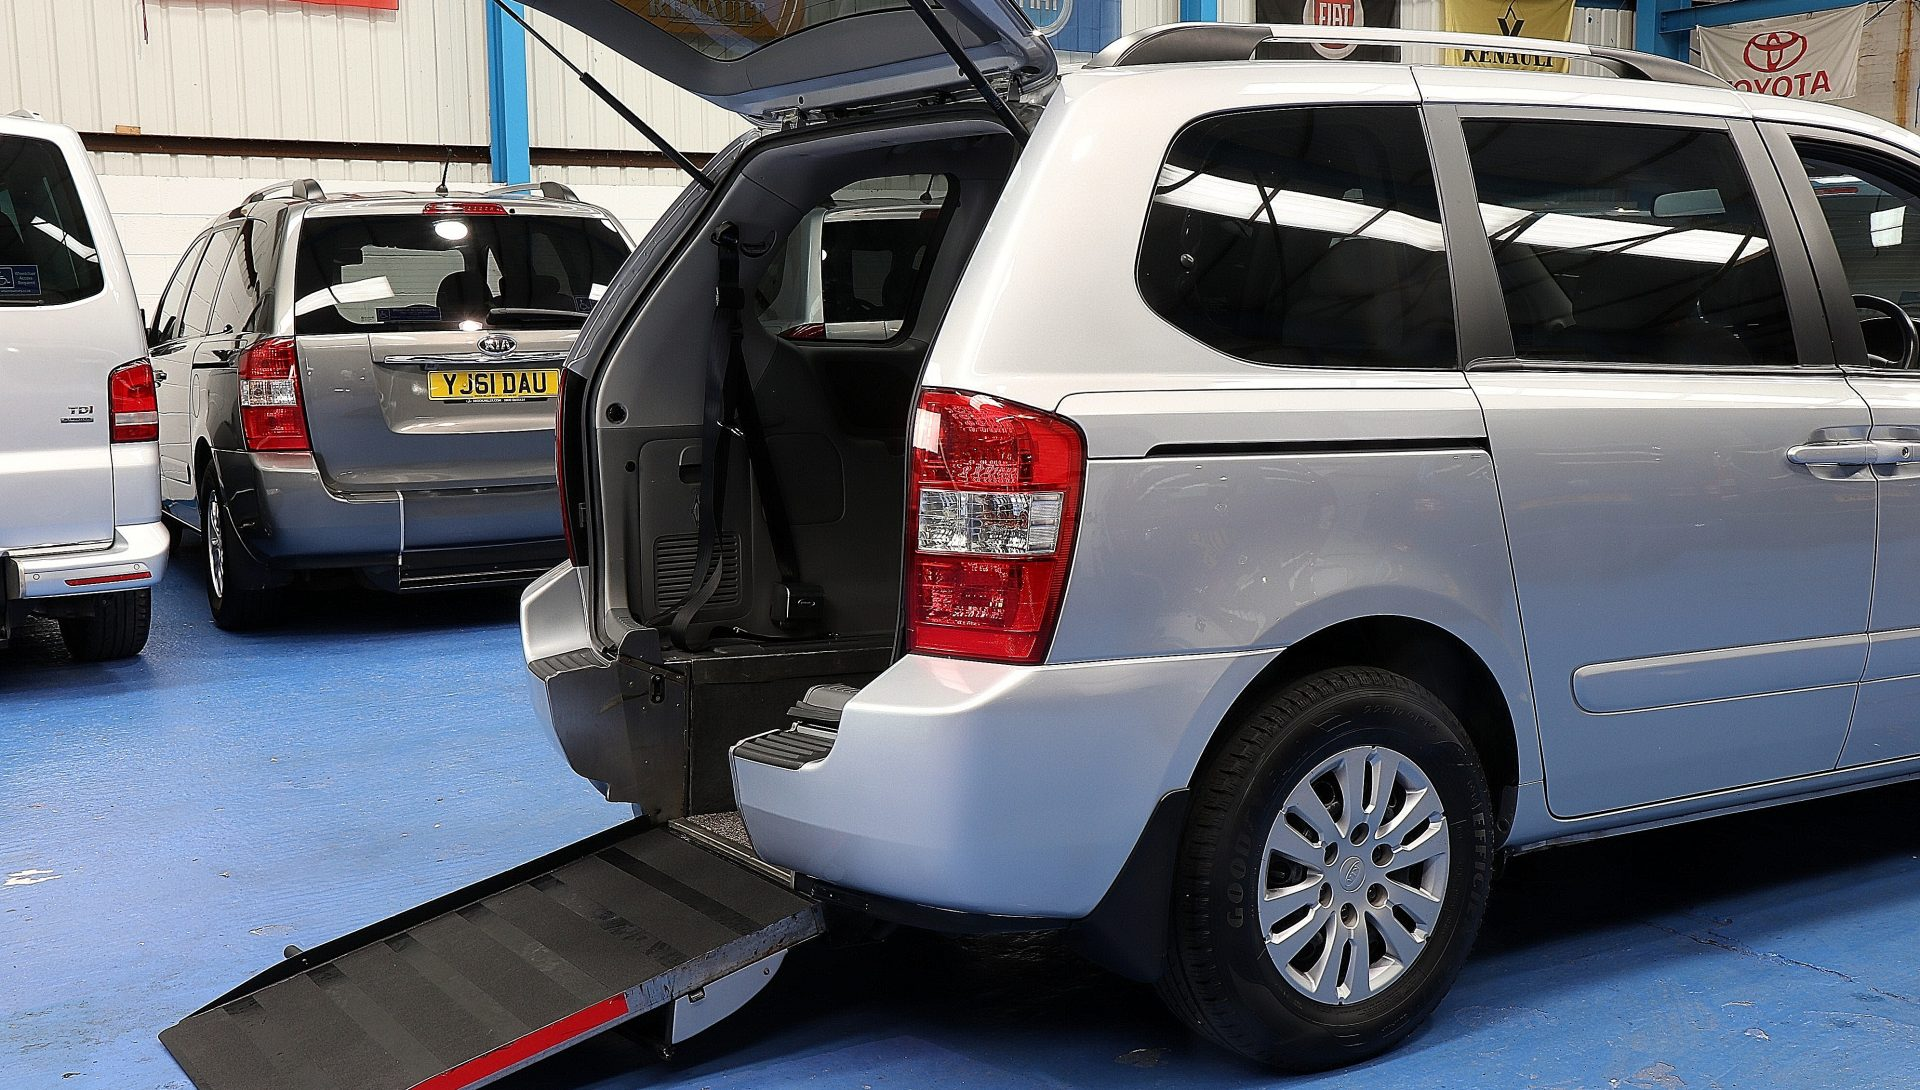 Kia sedona Wheelchair accessible yj60